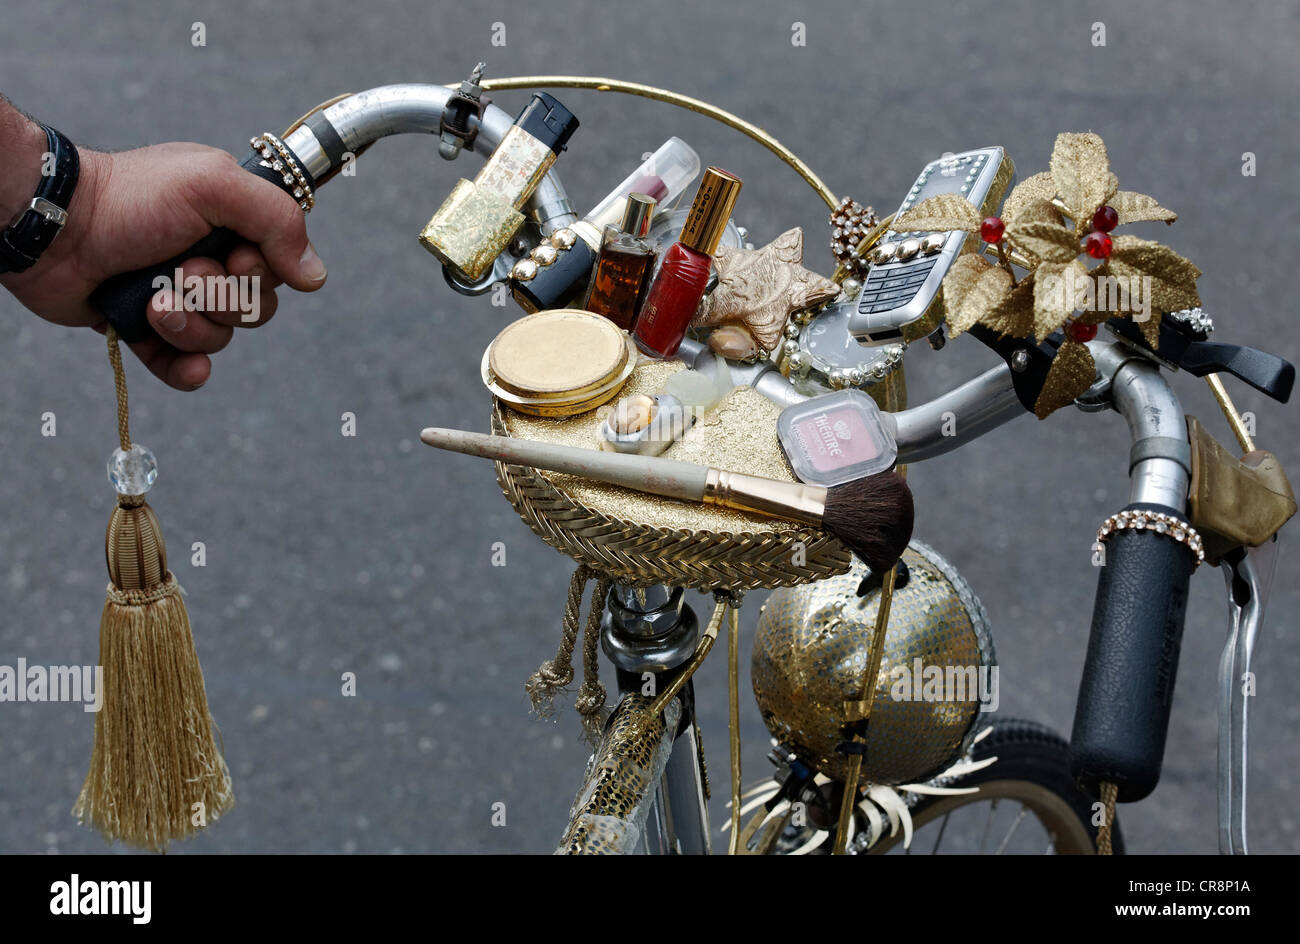 Handlebars of a ladies bicycle decorated with makeup and cell phone, Christopher Street Day in Duesseldorf - Stock Image